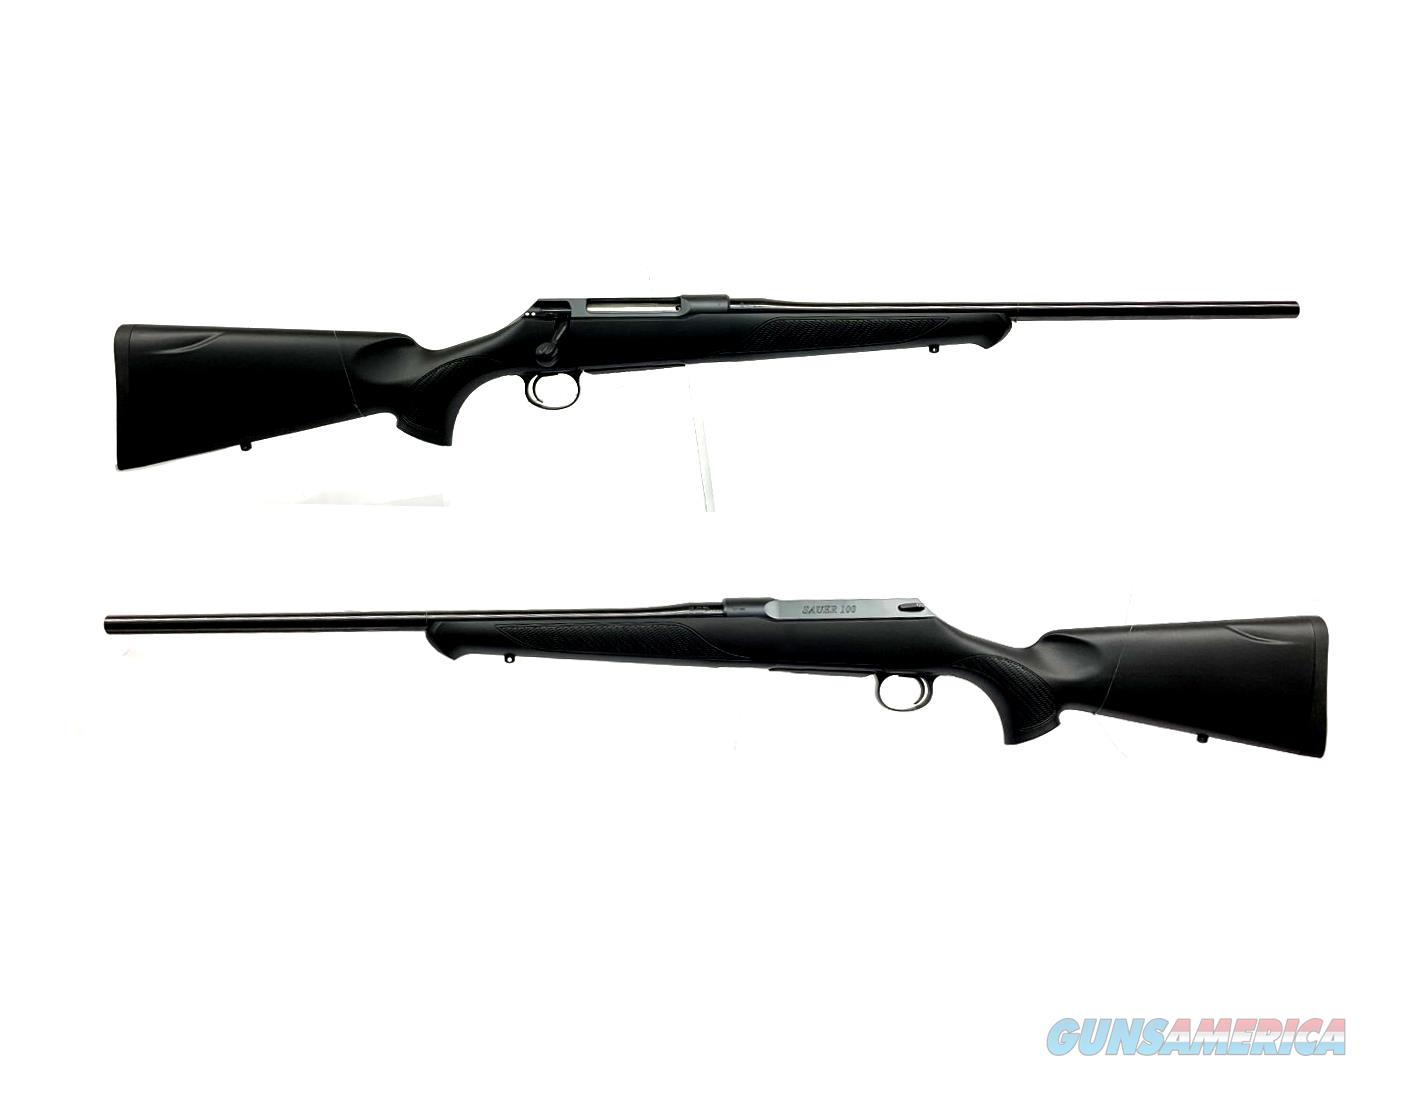 Sauer Model 100 Bolt-Action .270 WINCHESTER Rifle  Guns > Rifles > Sauer Rifles